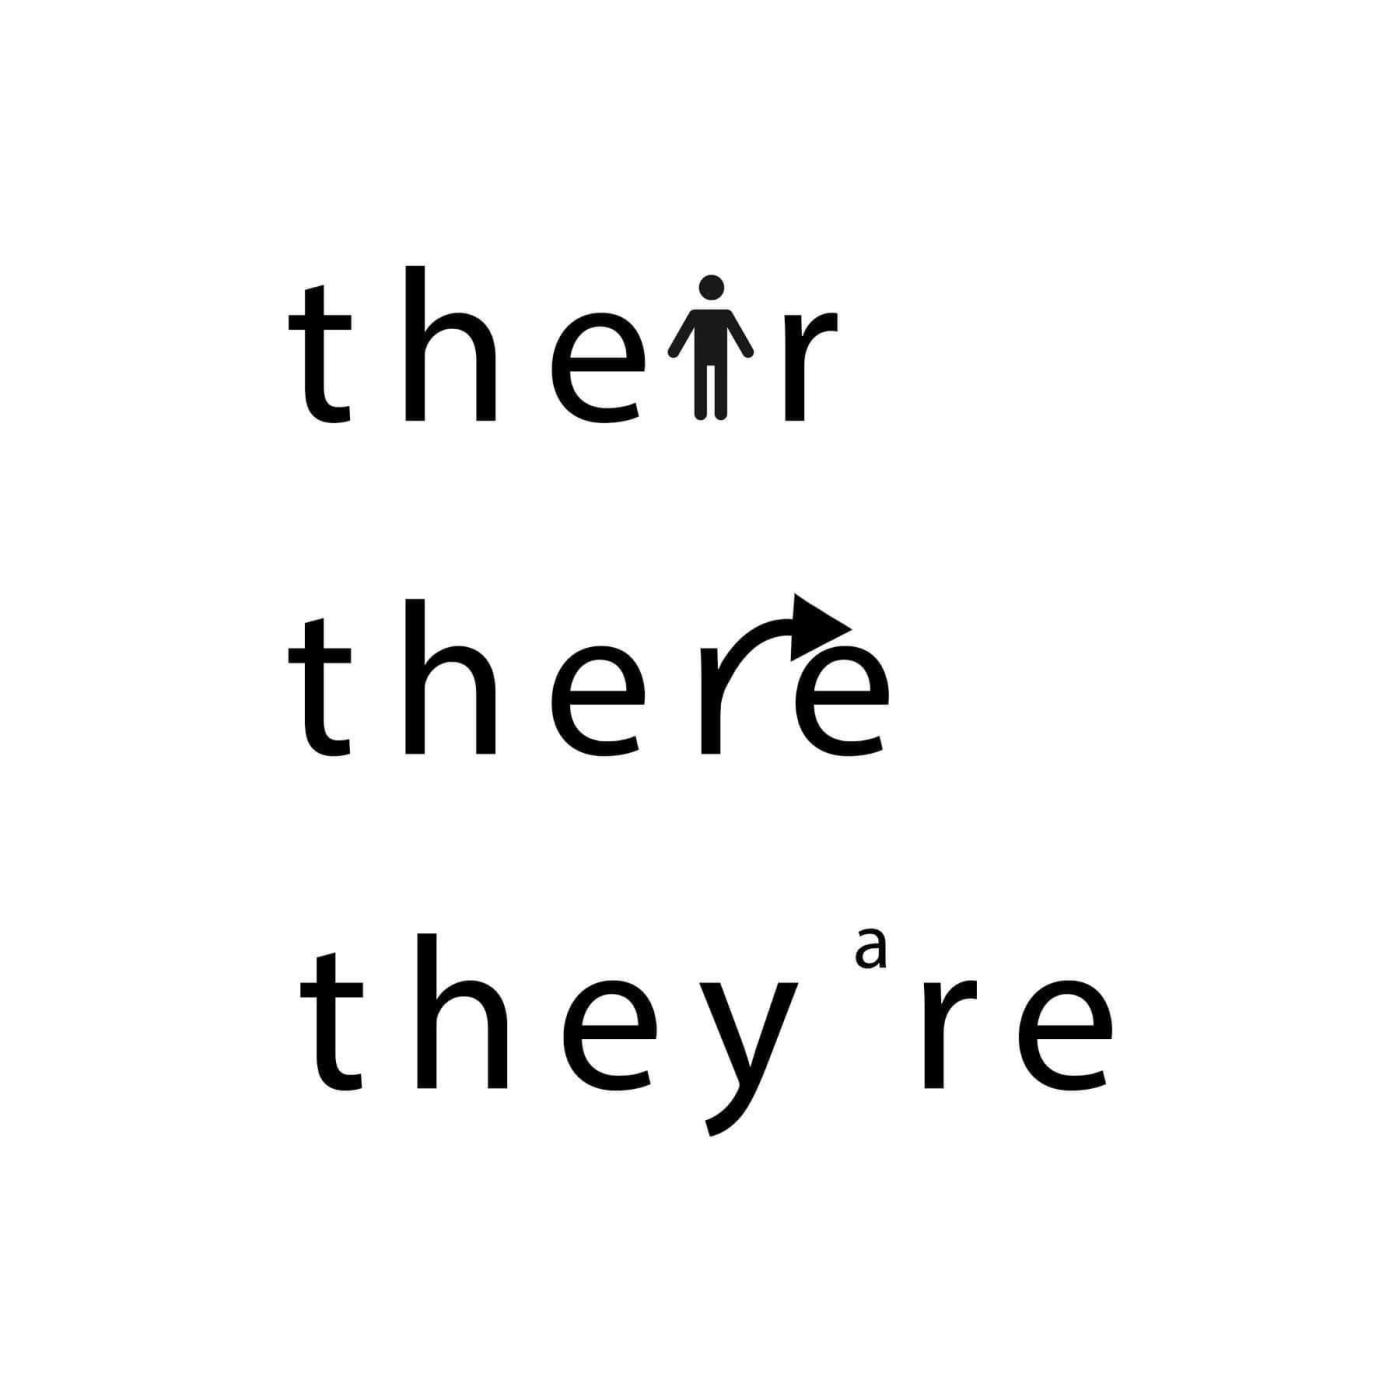 Image showing the difference between their, there, and they're